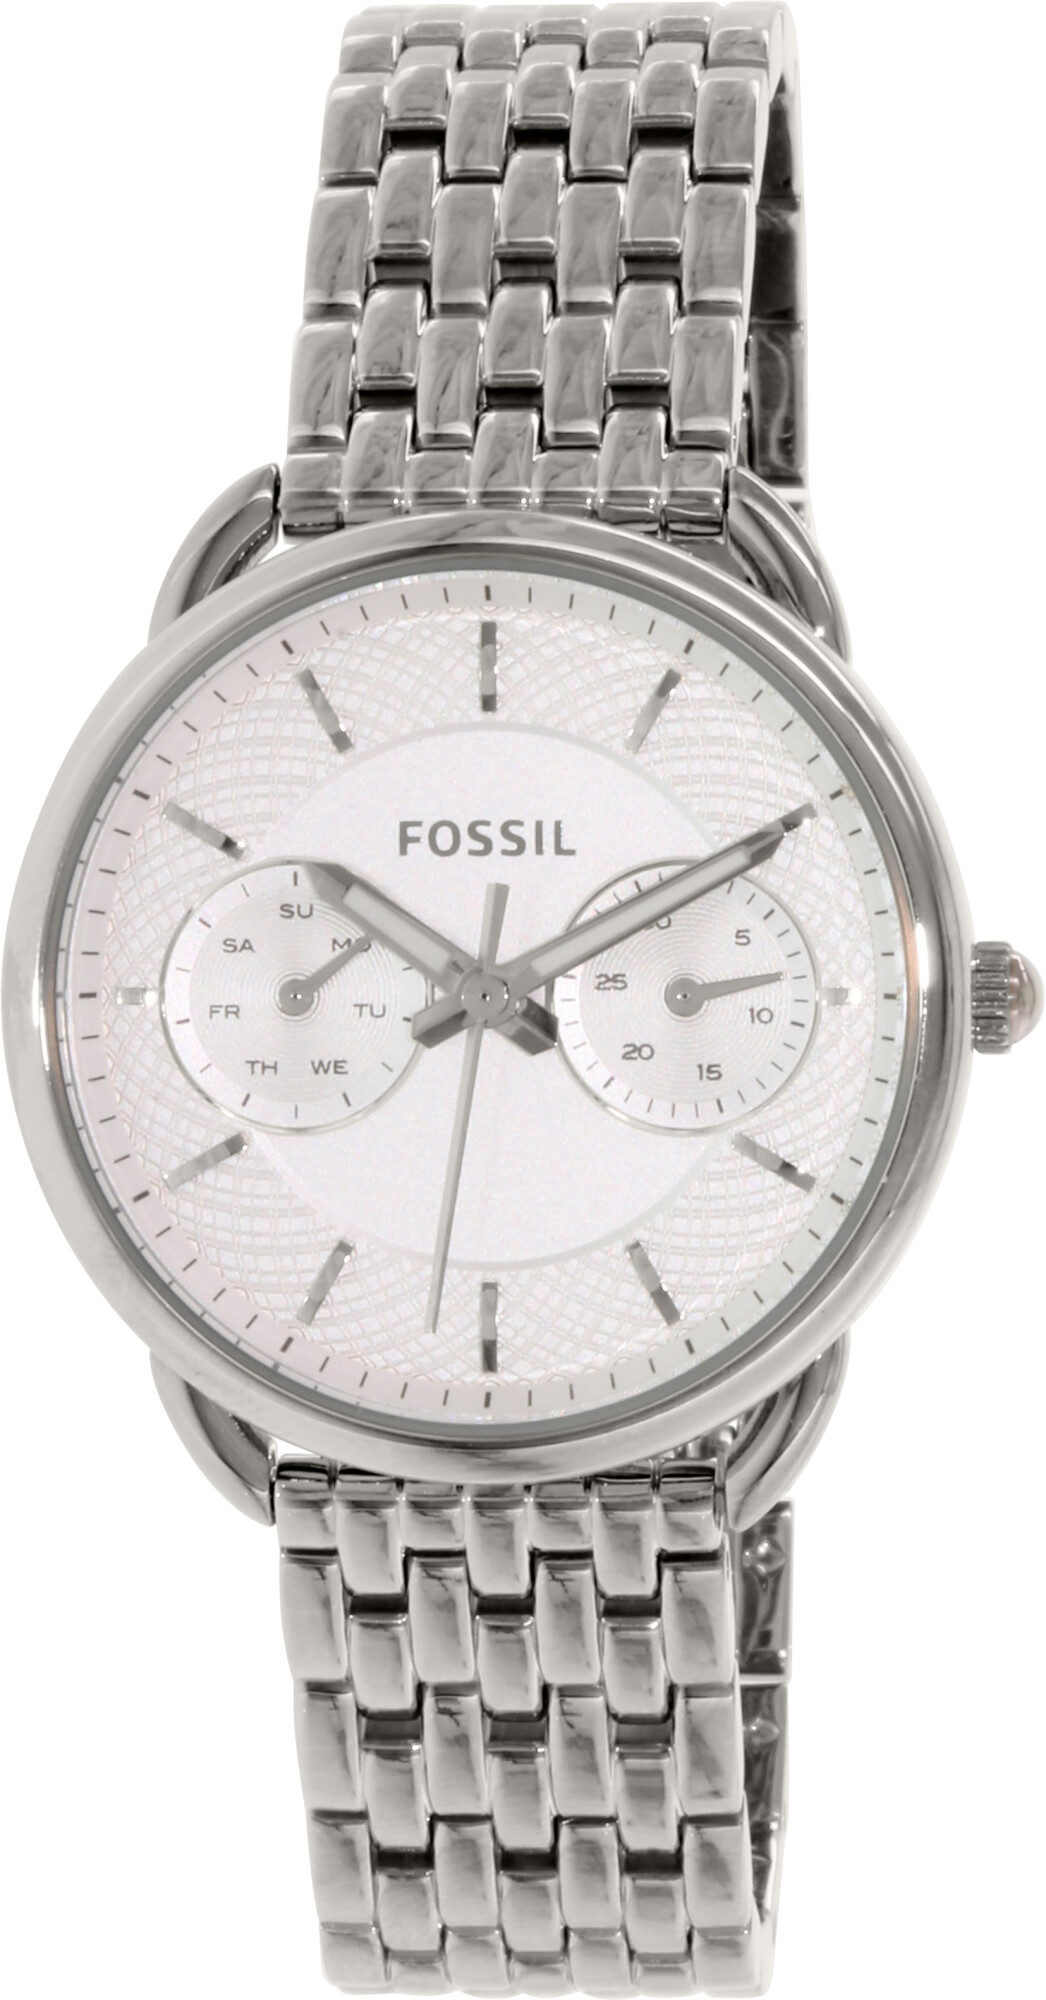 Fossil Women's Tailor ES3712 Silver Stainless-Steel Plated Japanese Quartz Fashion Watch